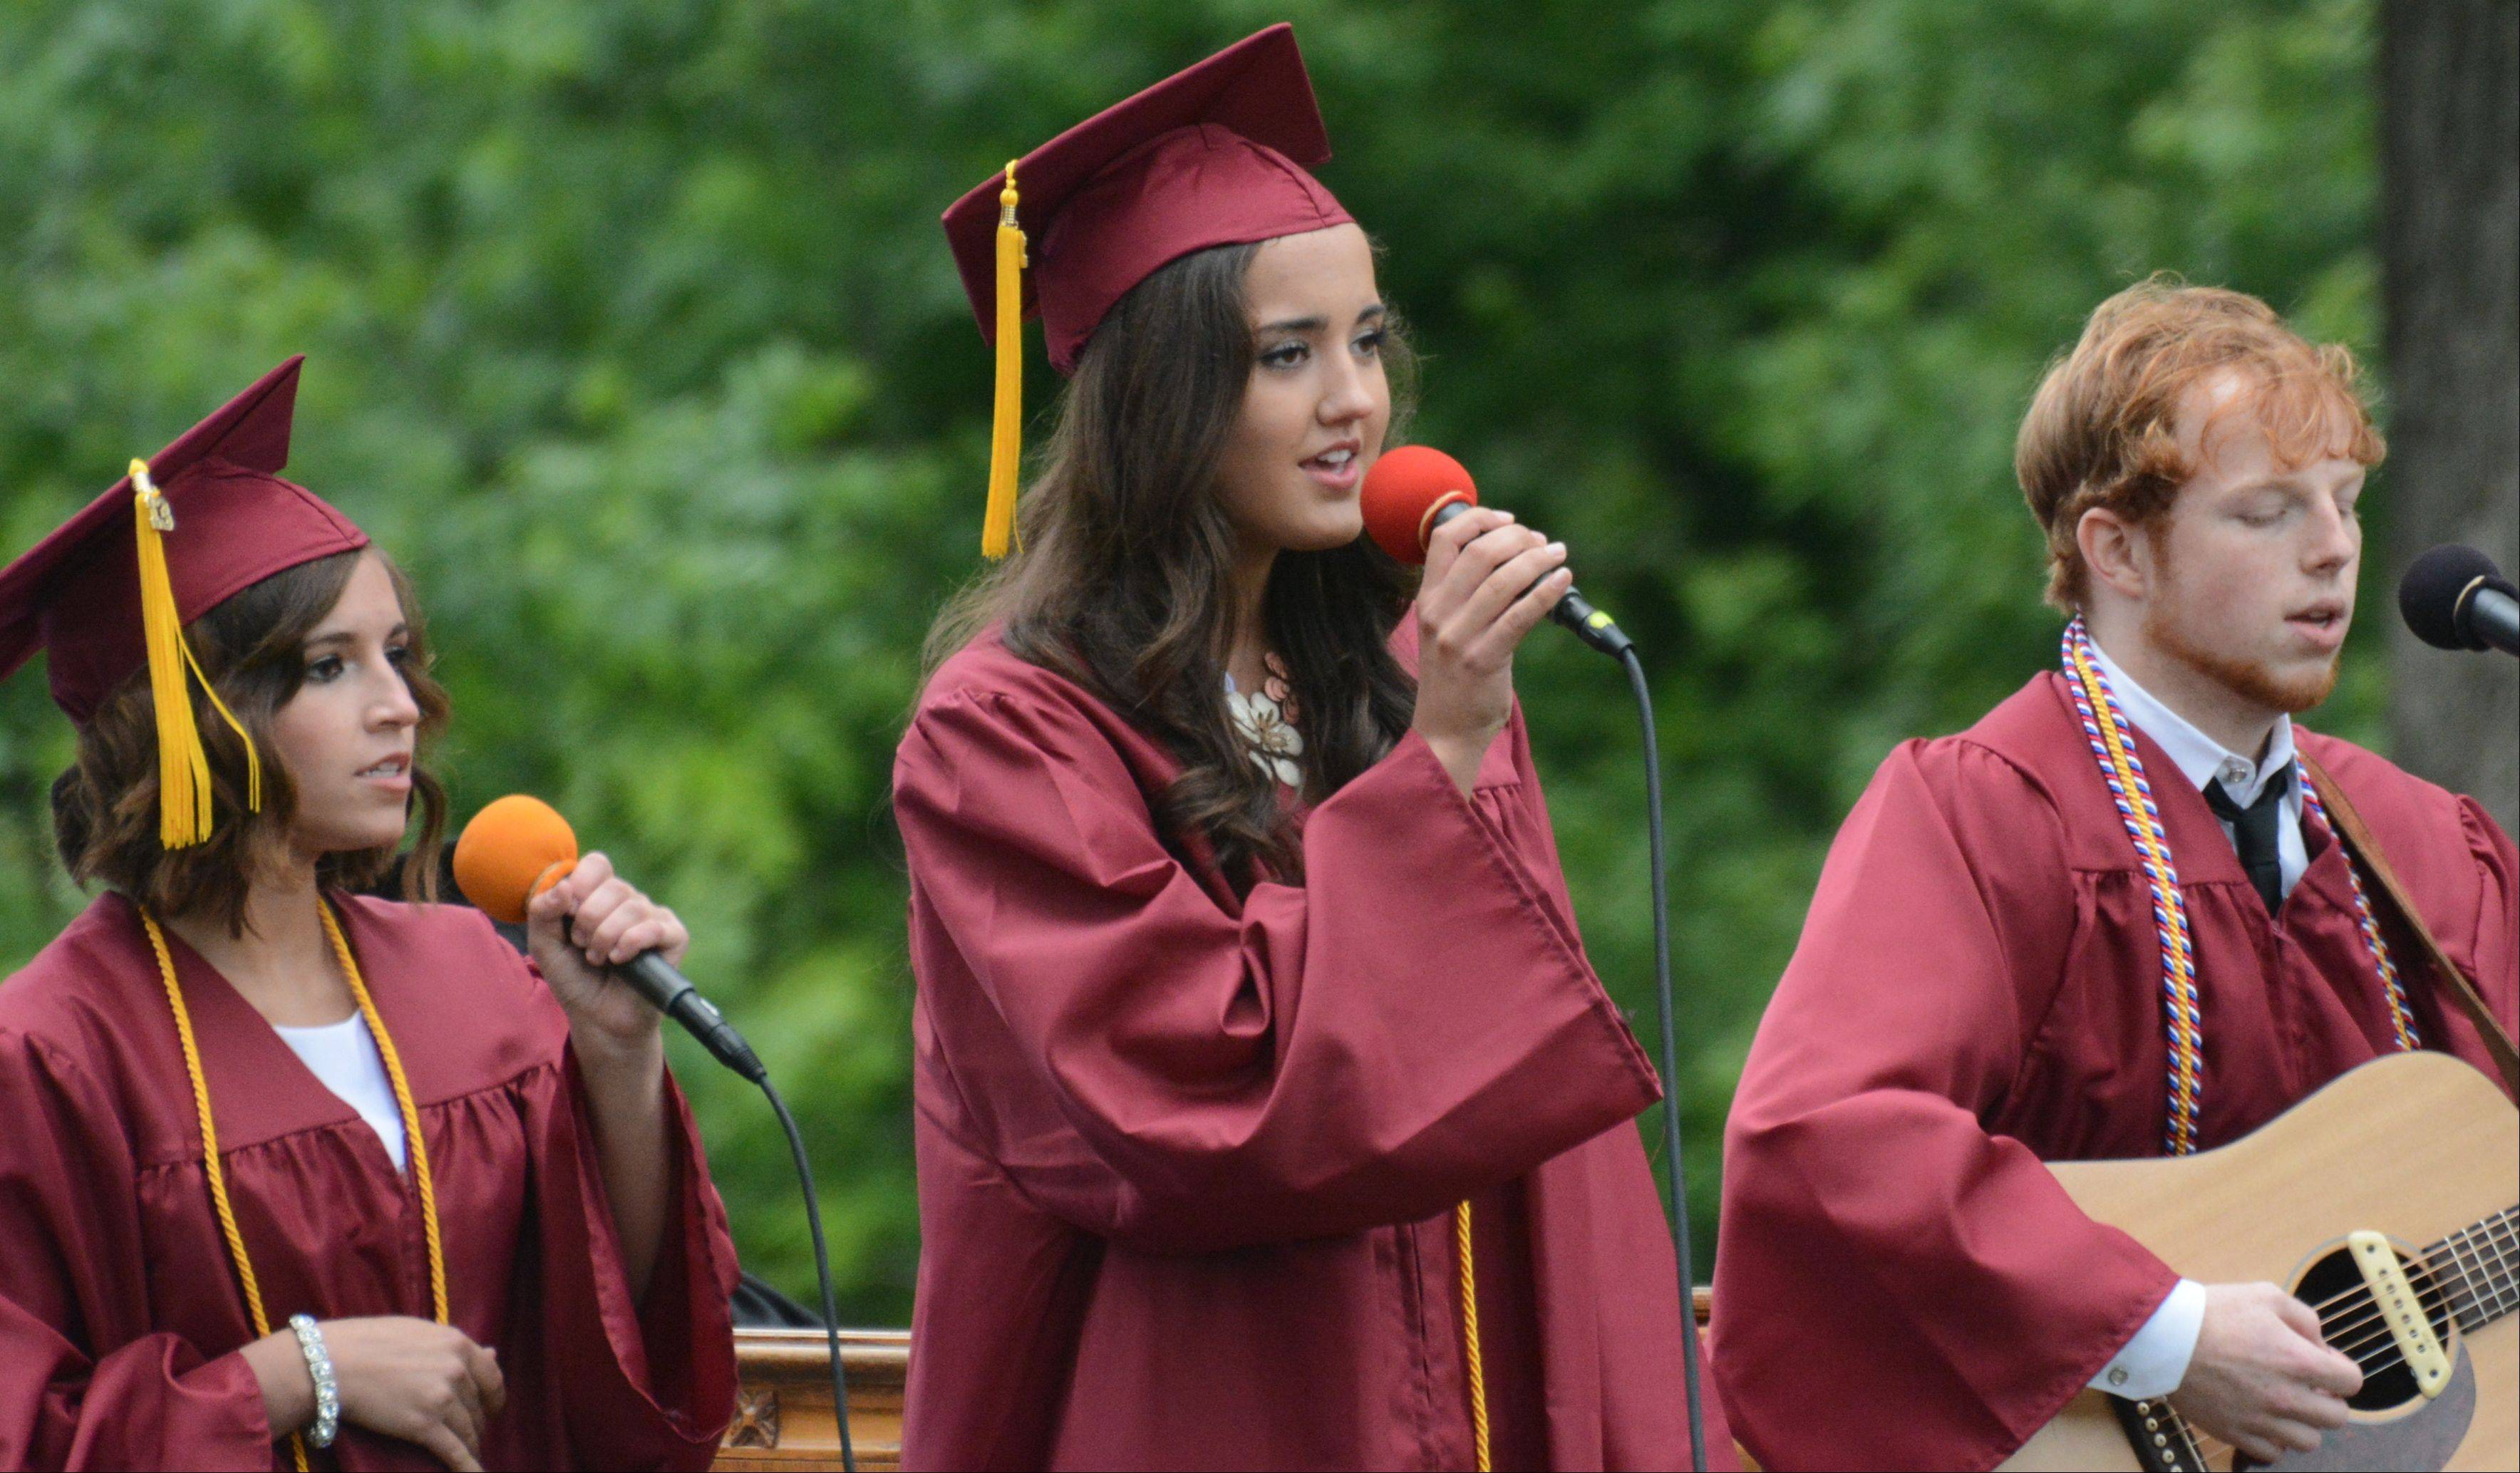 Images from the Wheaton Academy graduation on Sunday, June 2 at the school in West Chicago.